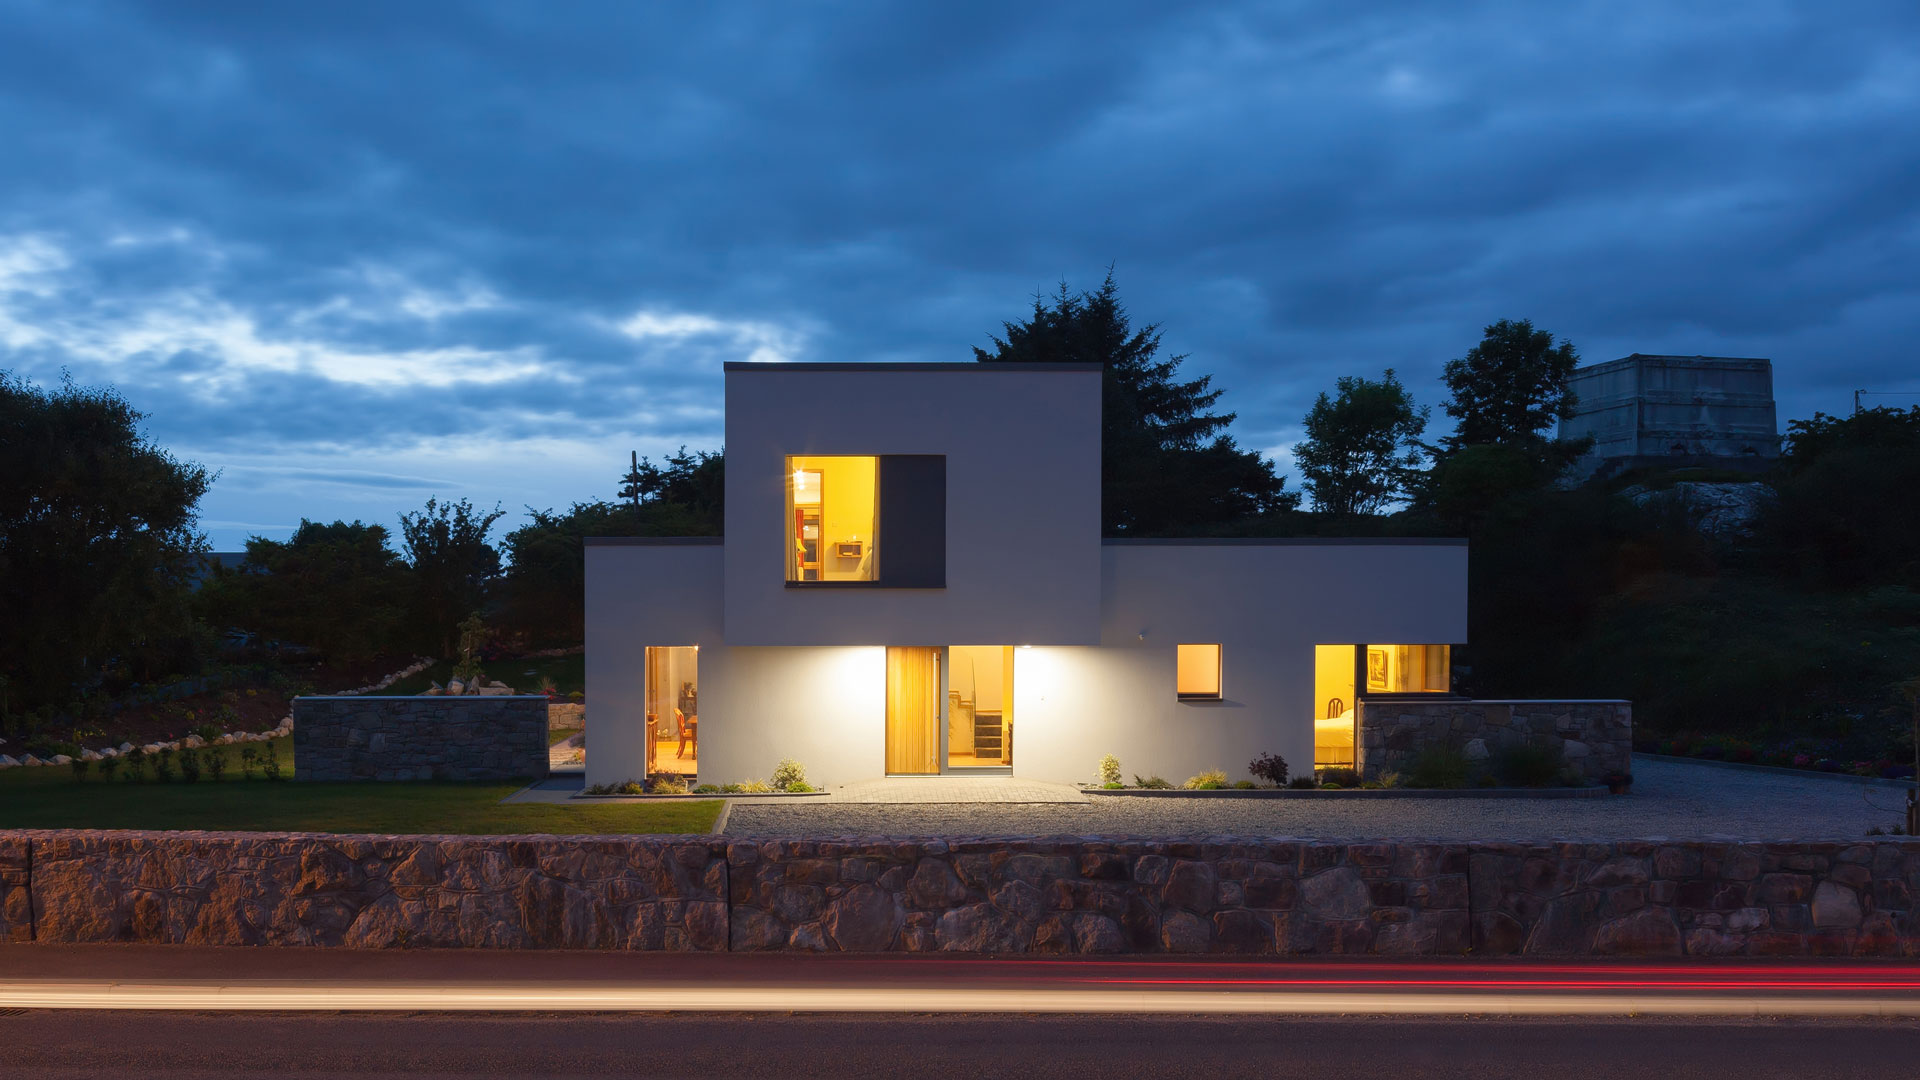 Greentec Ecological House. Architect, Helena McElmeel Architects. Supplier, Moylough Concrete Products. Photographer, Kelvin Gilmore